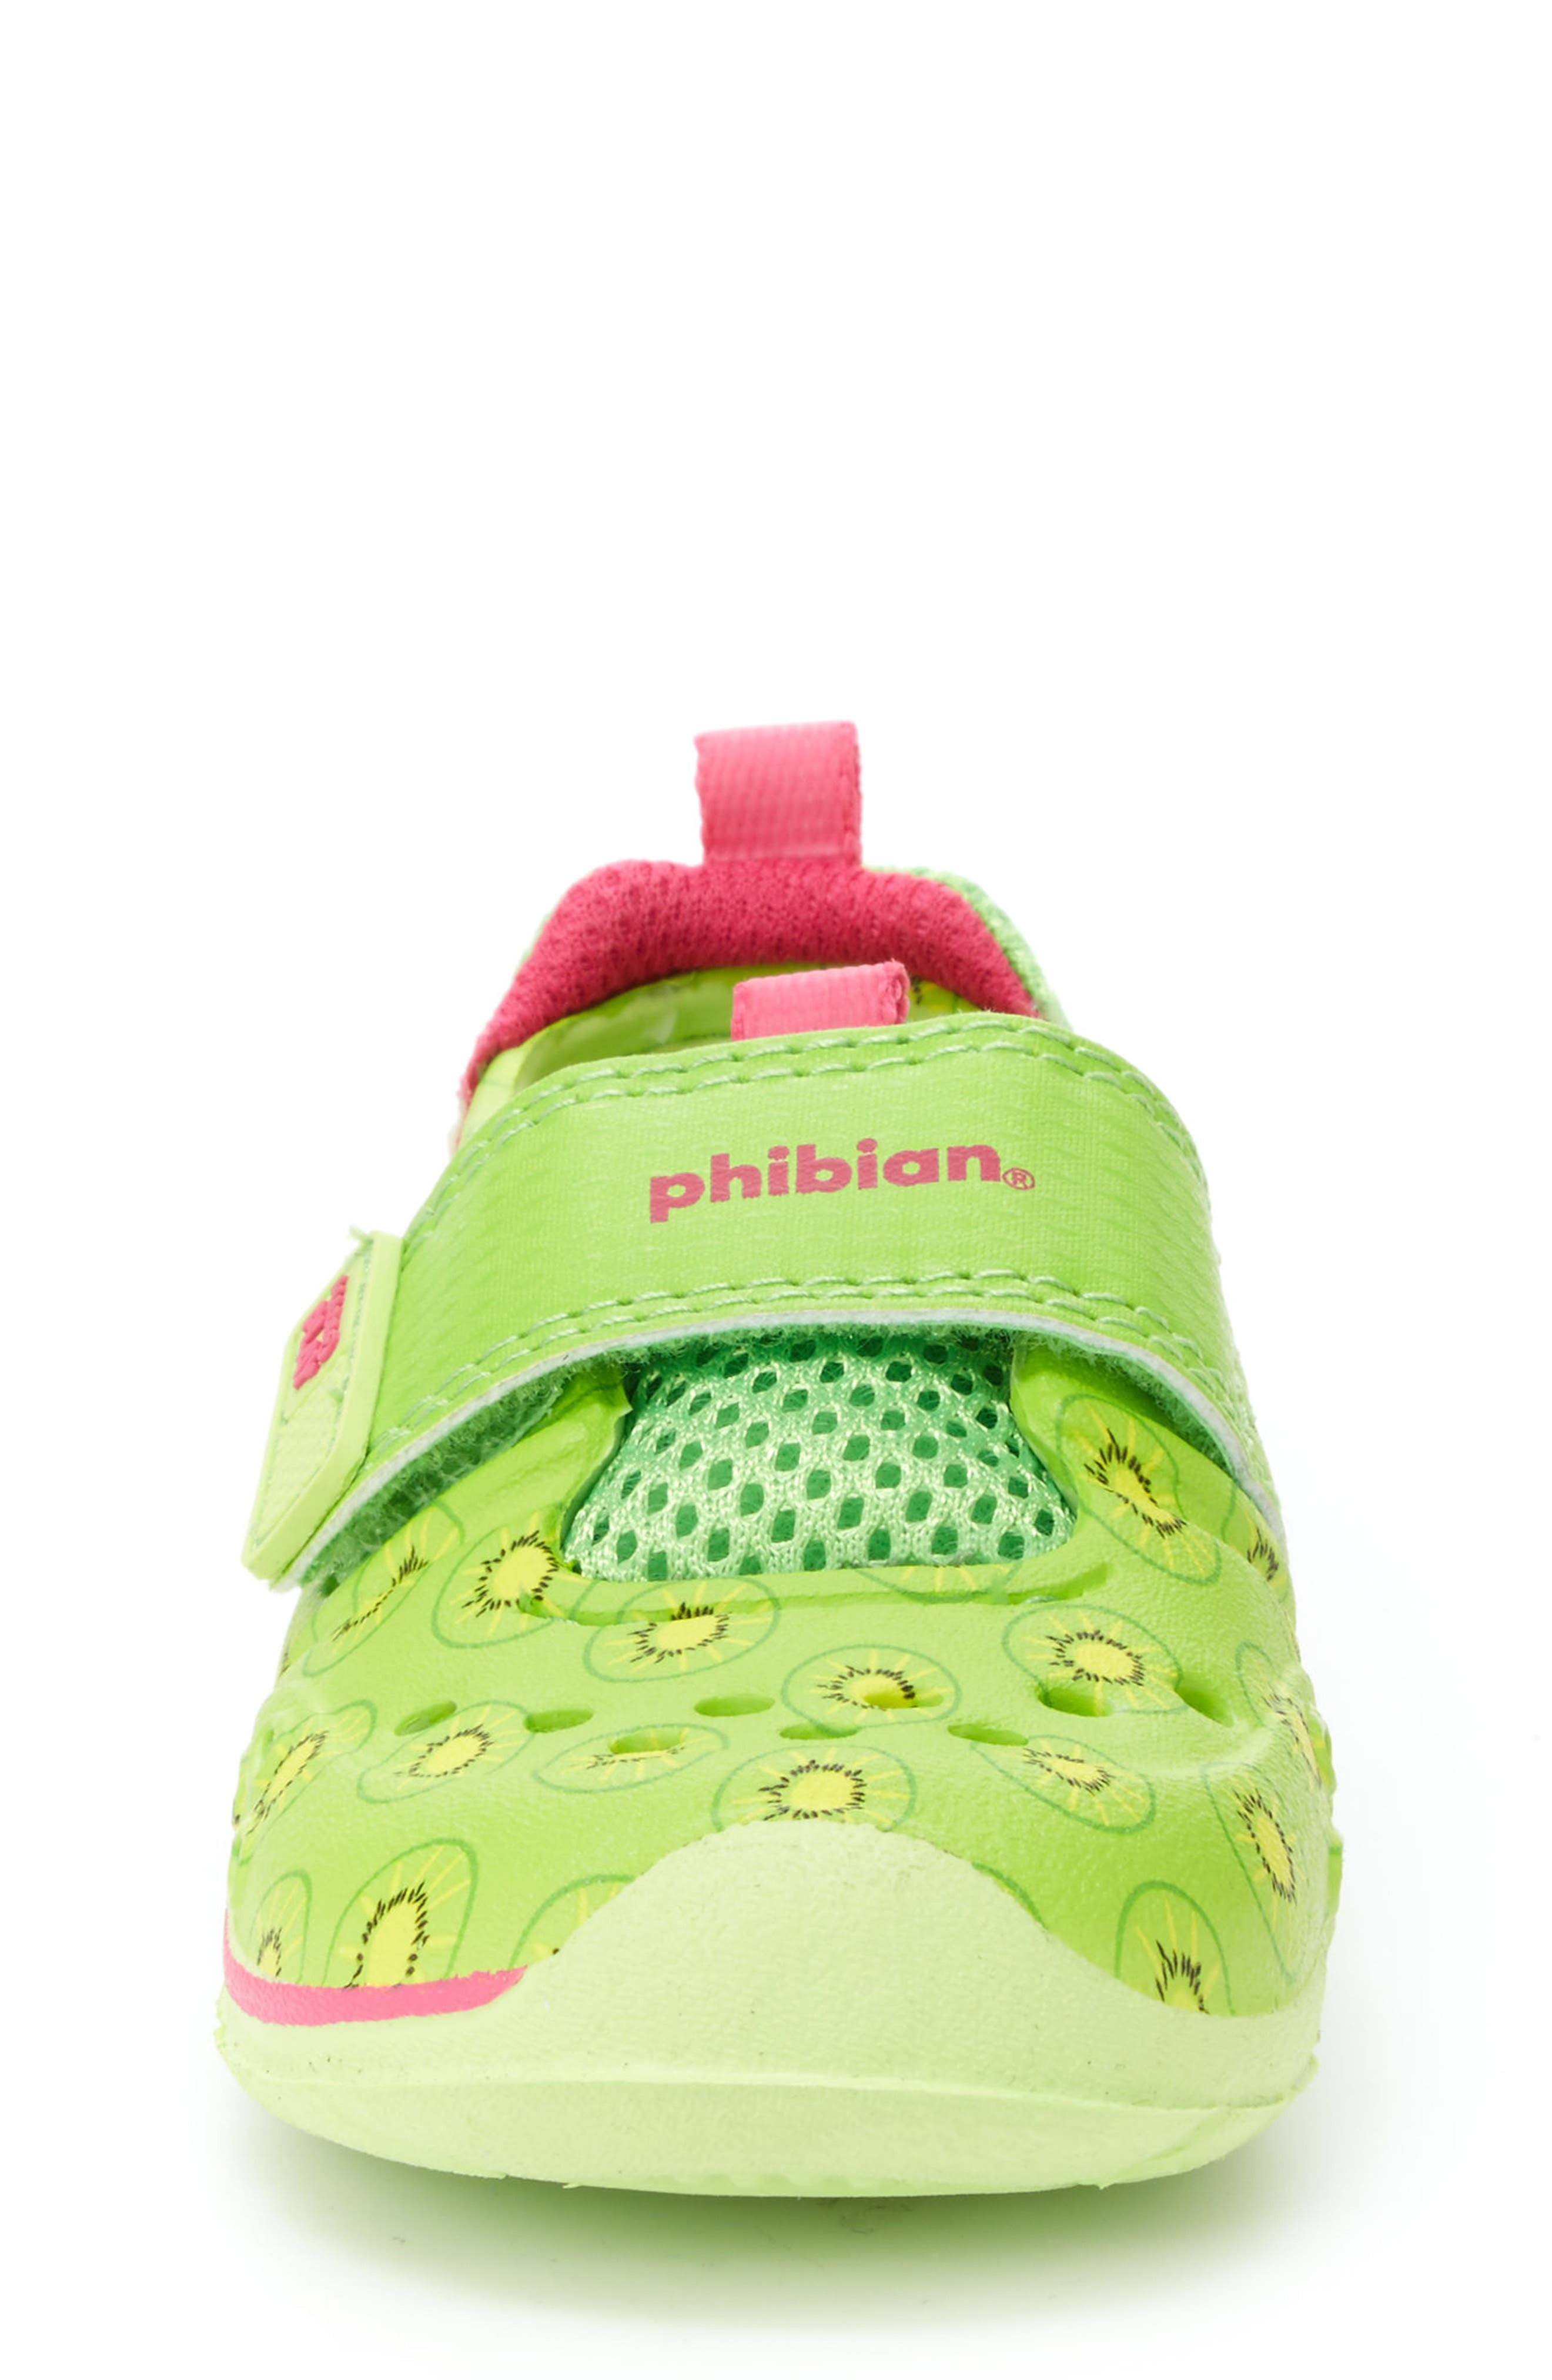 Made2Play<sup>®</sup> Phibian Sneaker,                             Alternate thumbnail 3, color,                             Green Kiwi